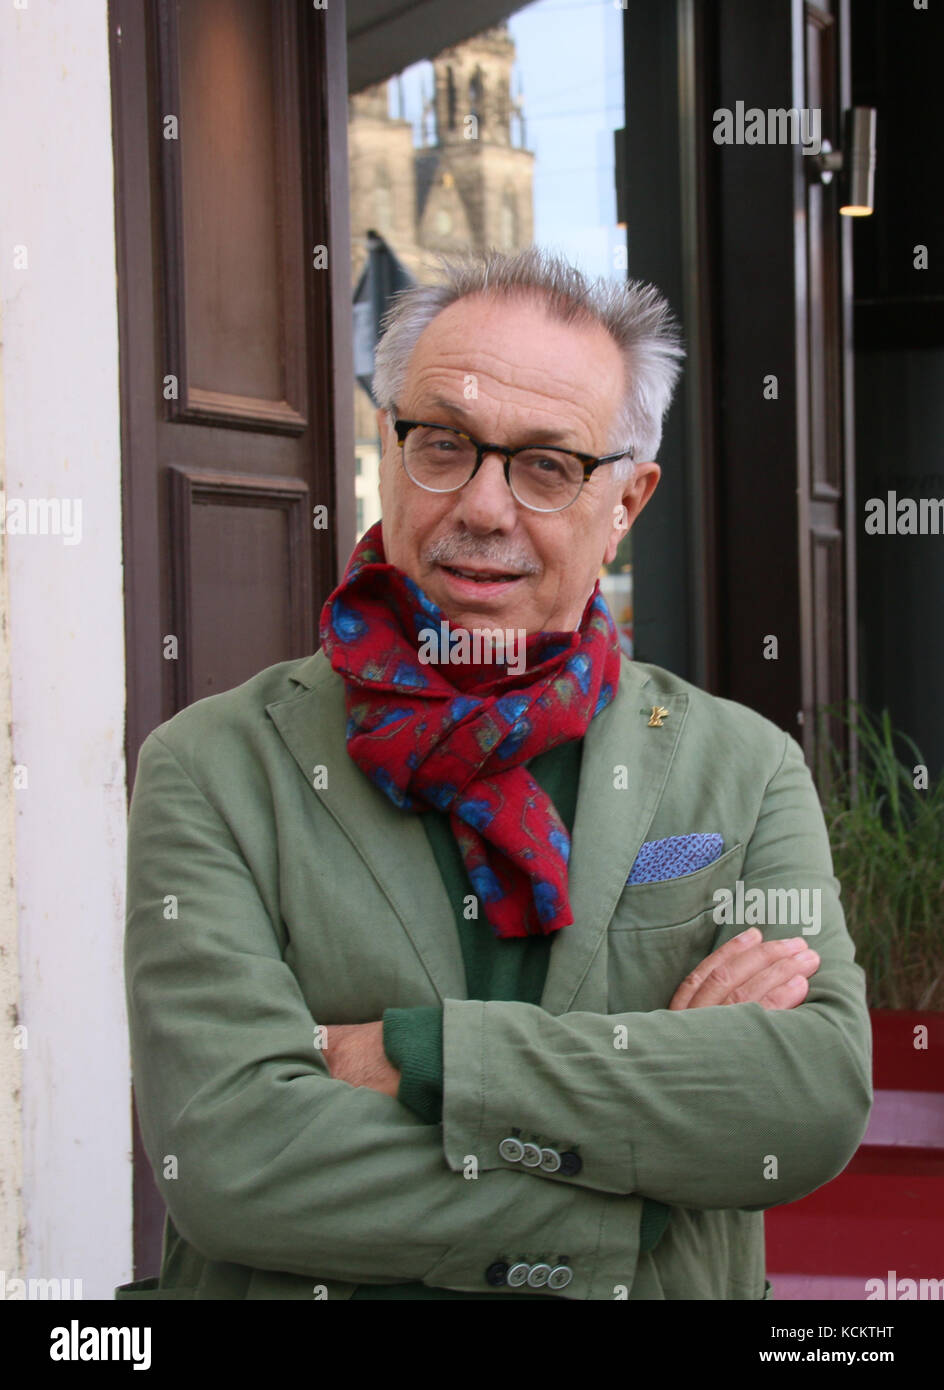 MAGDEBURG, GERMANY - September 15, 2017: The head of the Berlinale Film Festival, Dieter Kosslick,  in Magdeburg. He criticizes Harvey Weinstein. Stock Photo